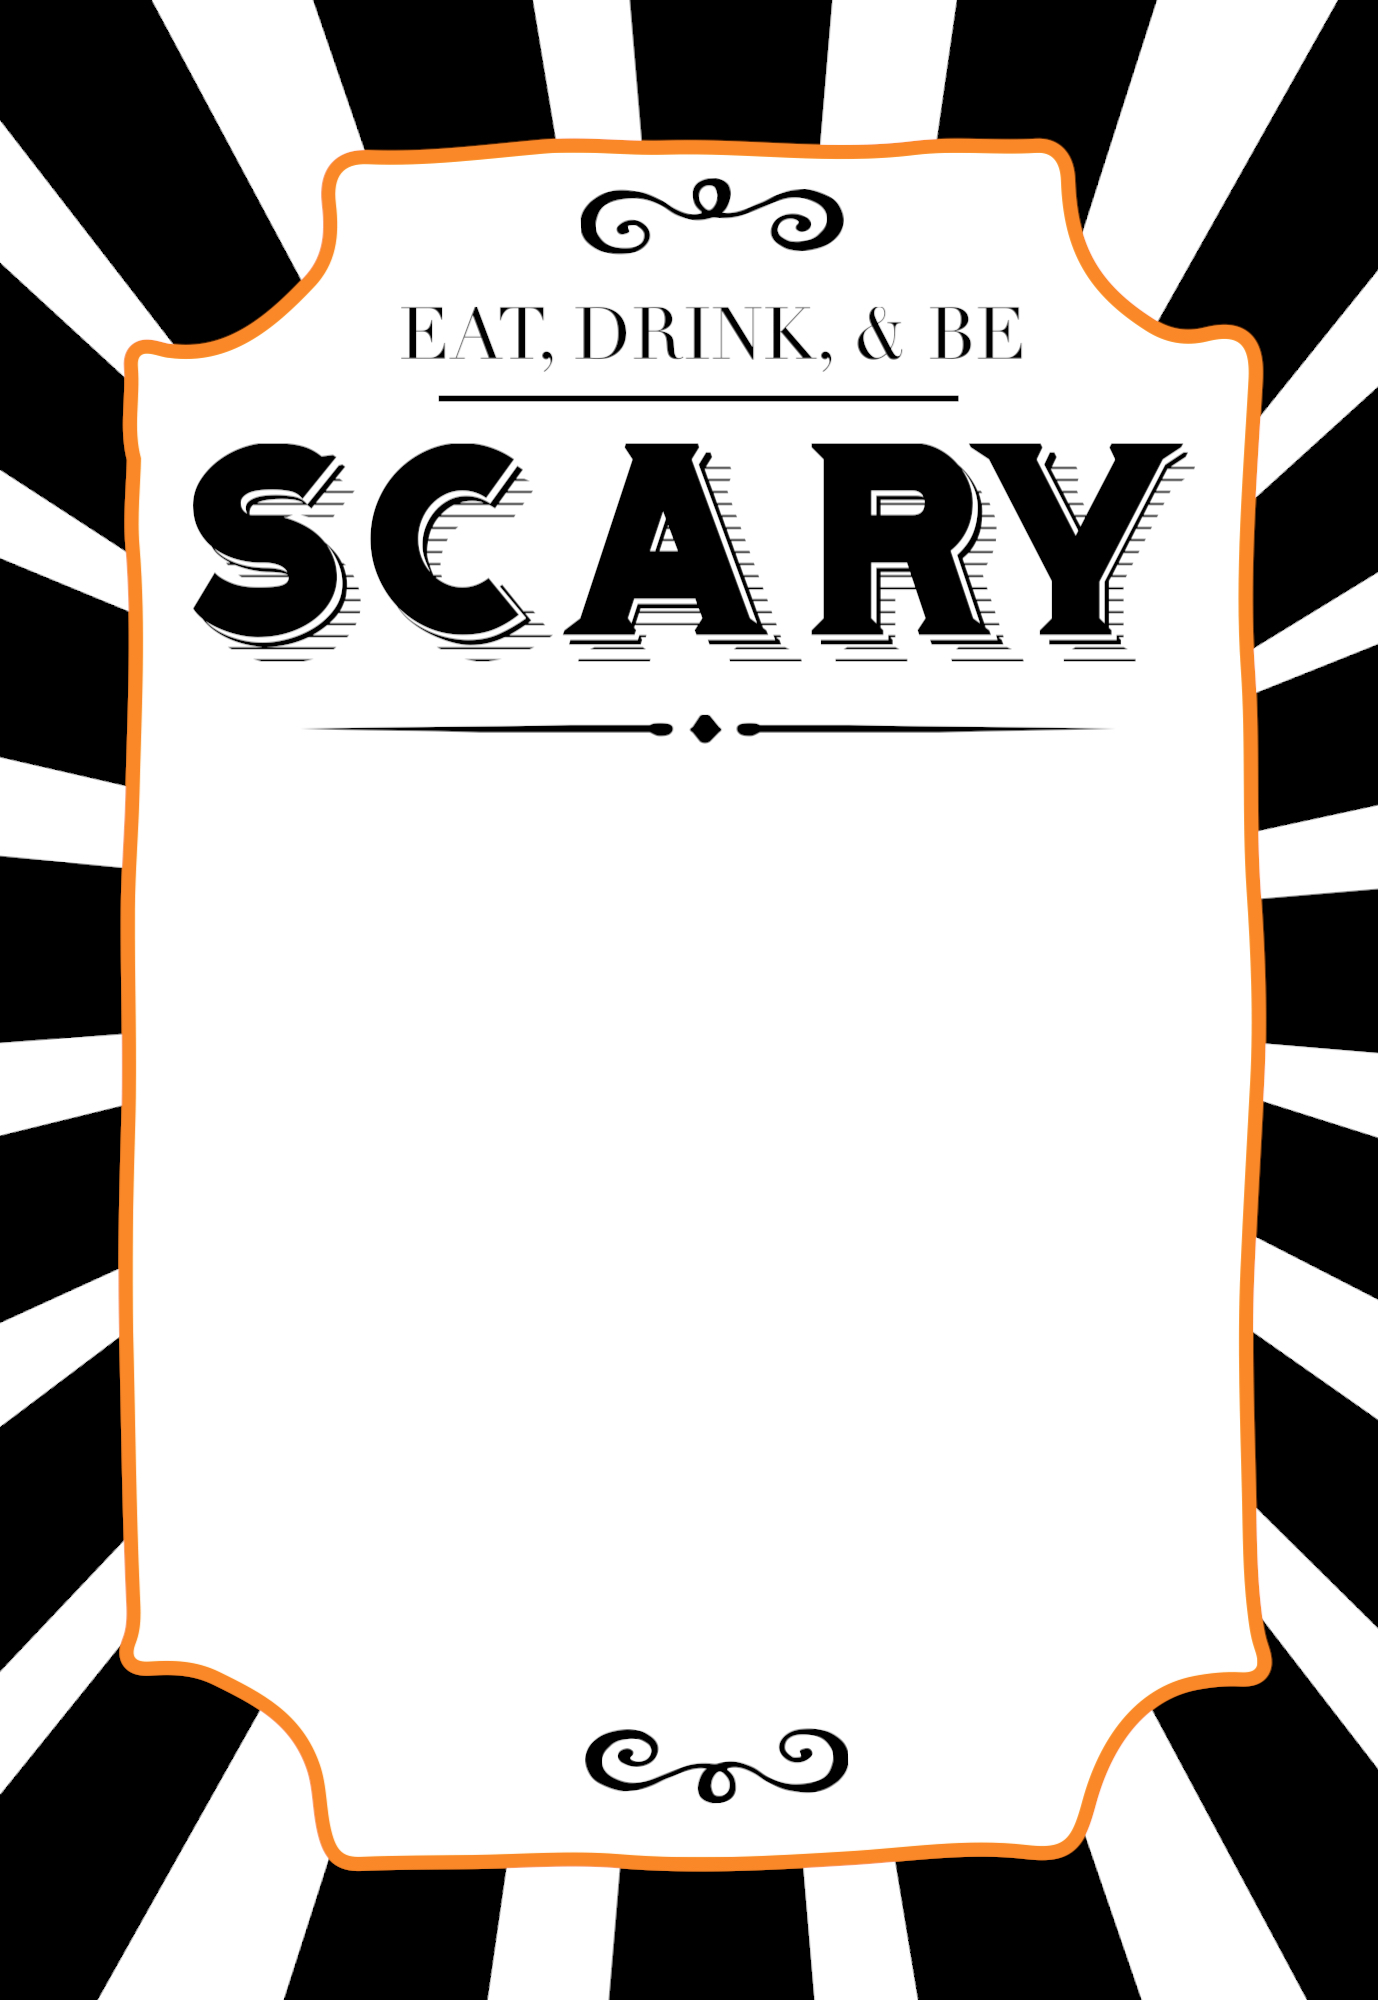 halloween invitations free printable template easy diy halloween invitations templates for your spooky halloween party - Free Halloween Templates